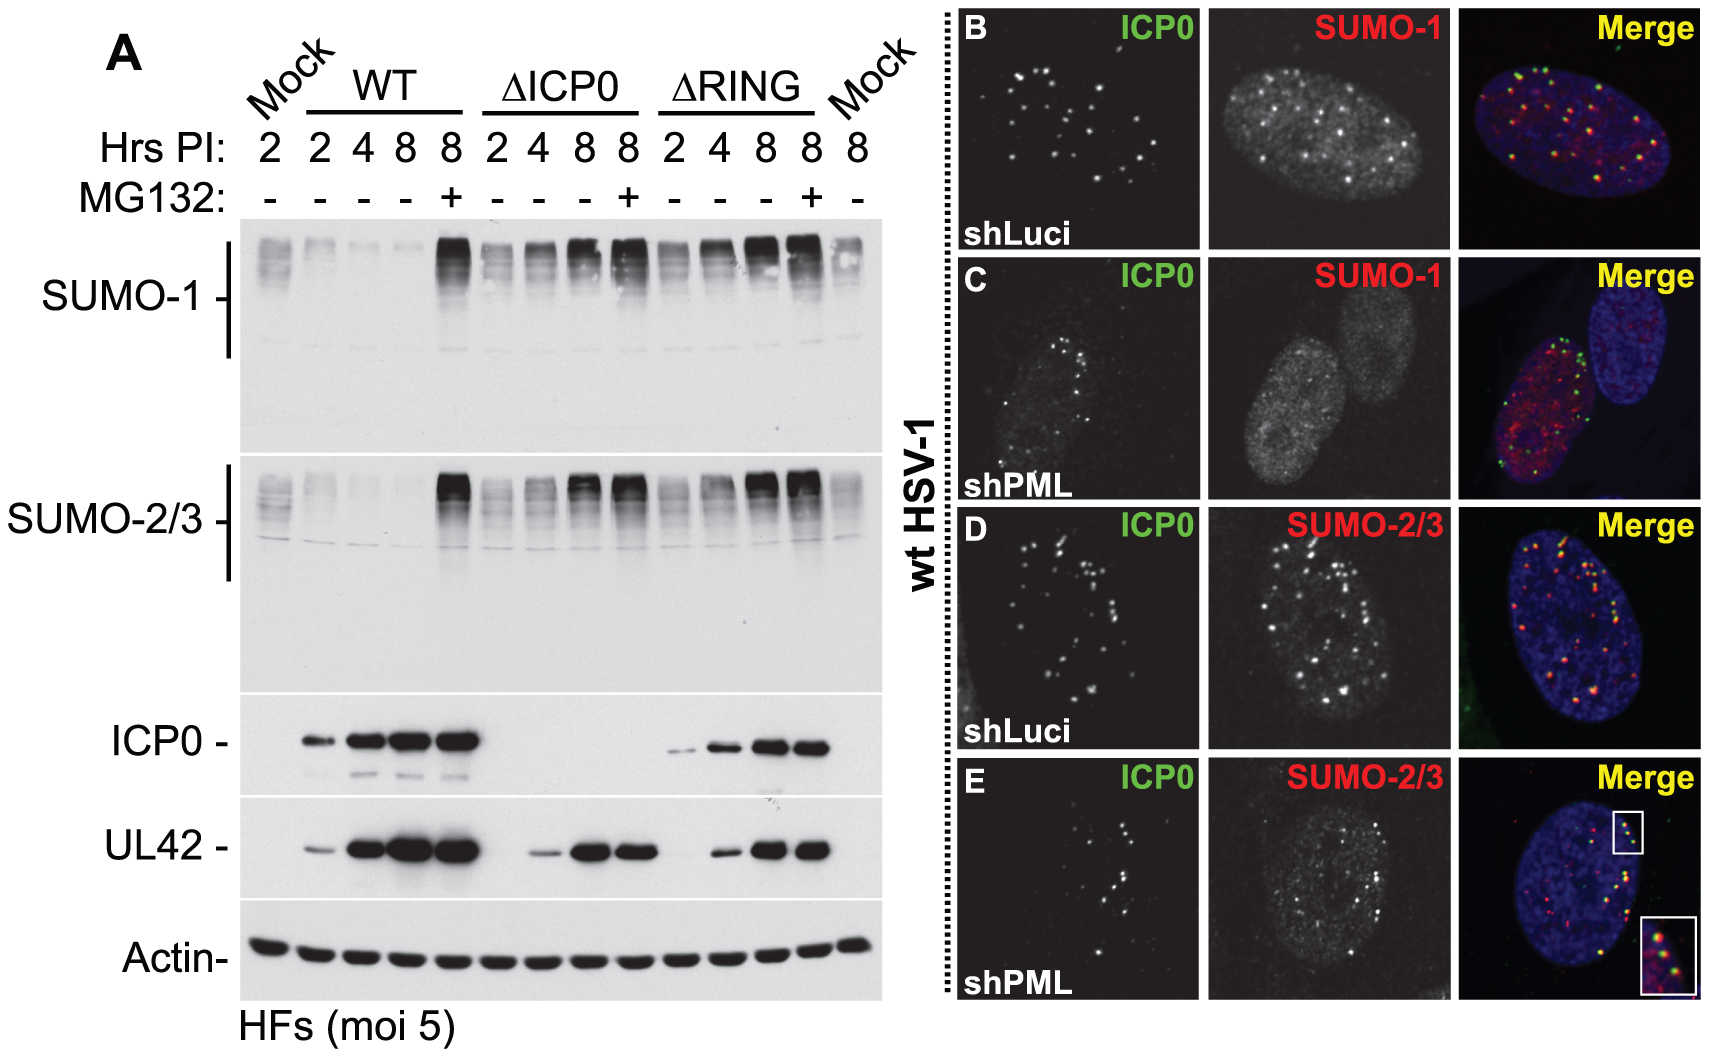 ICP0 localizes to and induces the degradation of SUMO-1 and SUMO-2/3 conjugates during infection in a RING finger- and proteasome-dependent manner.